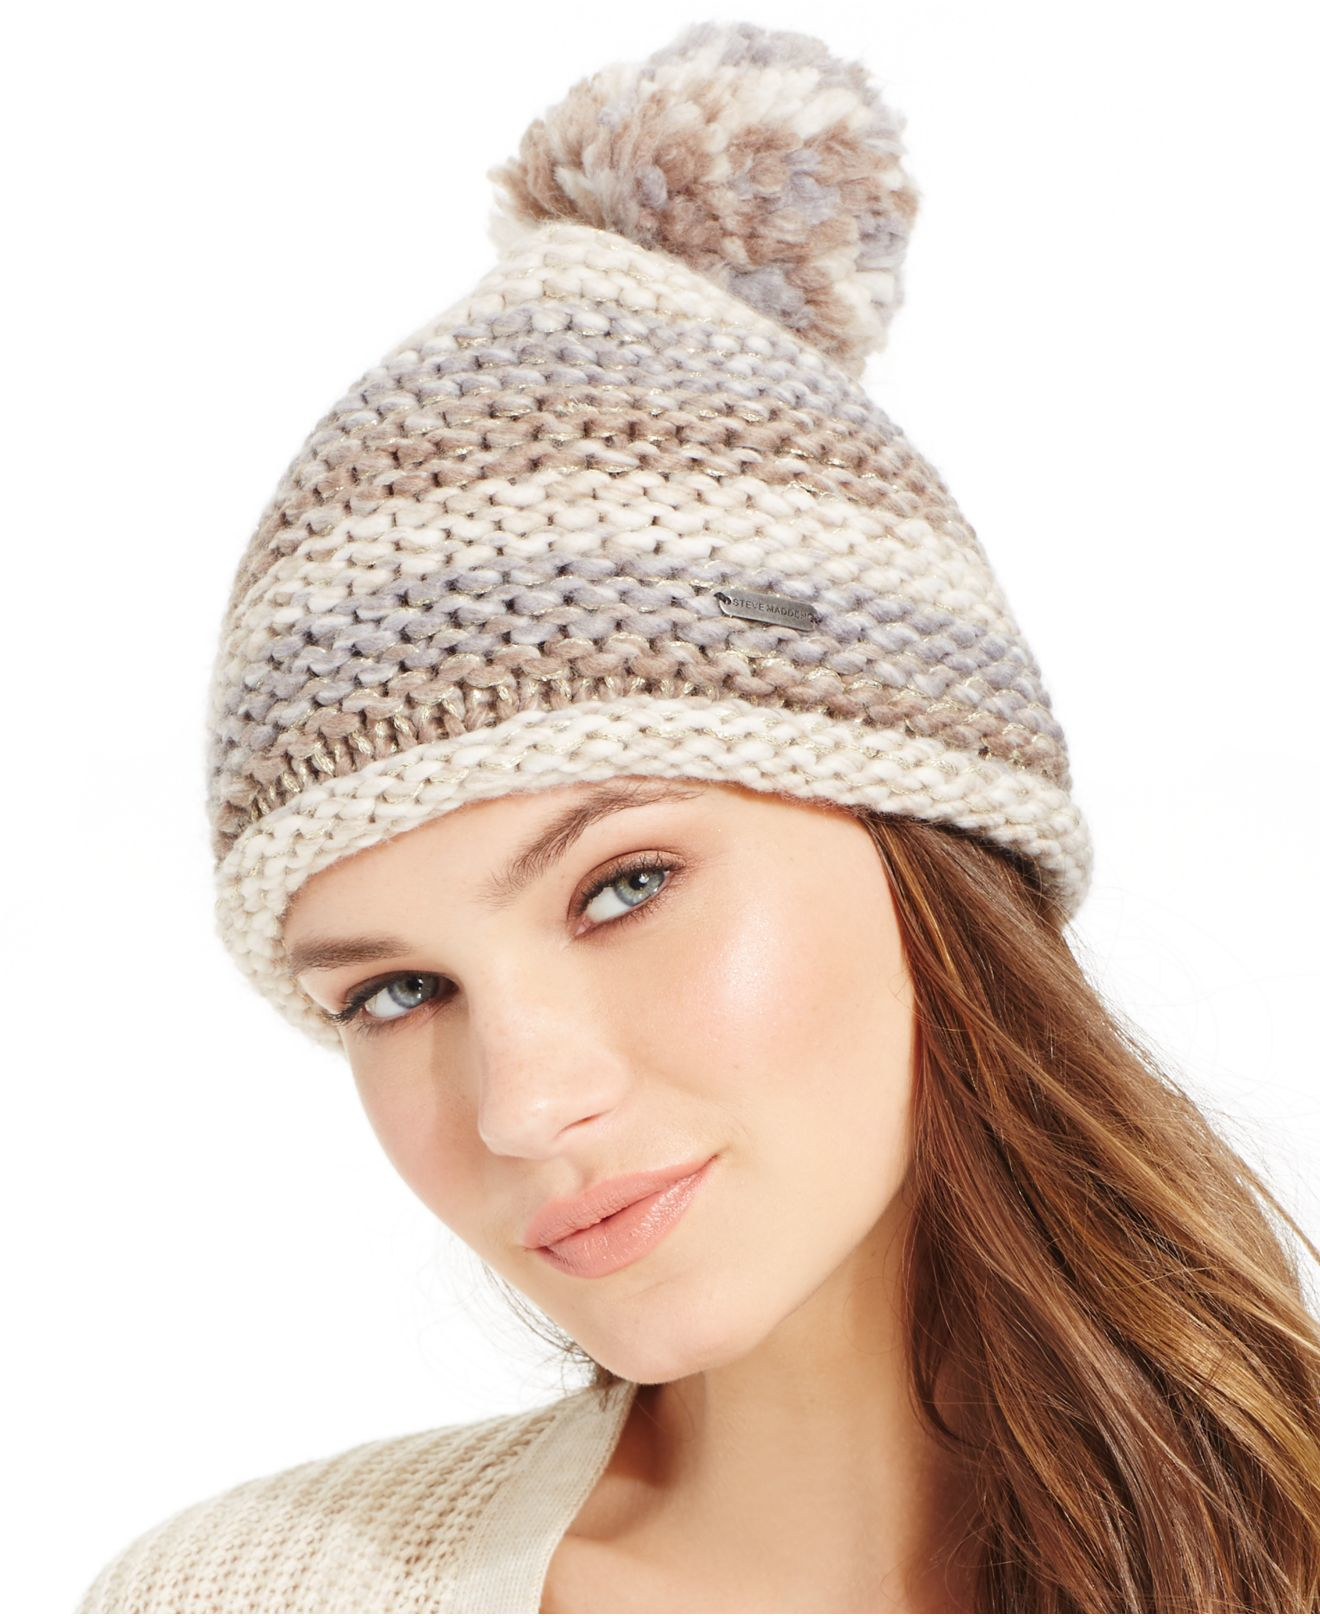 Lyst - Steve Madden Time To Shine Cuff Hat With Pom in Natural d22514b7a1a